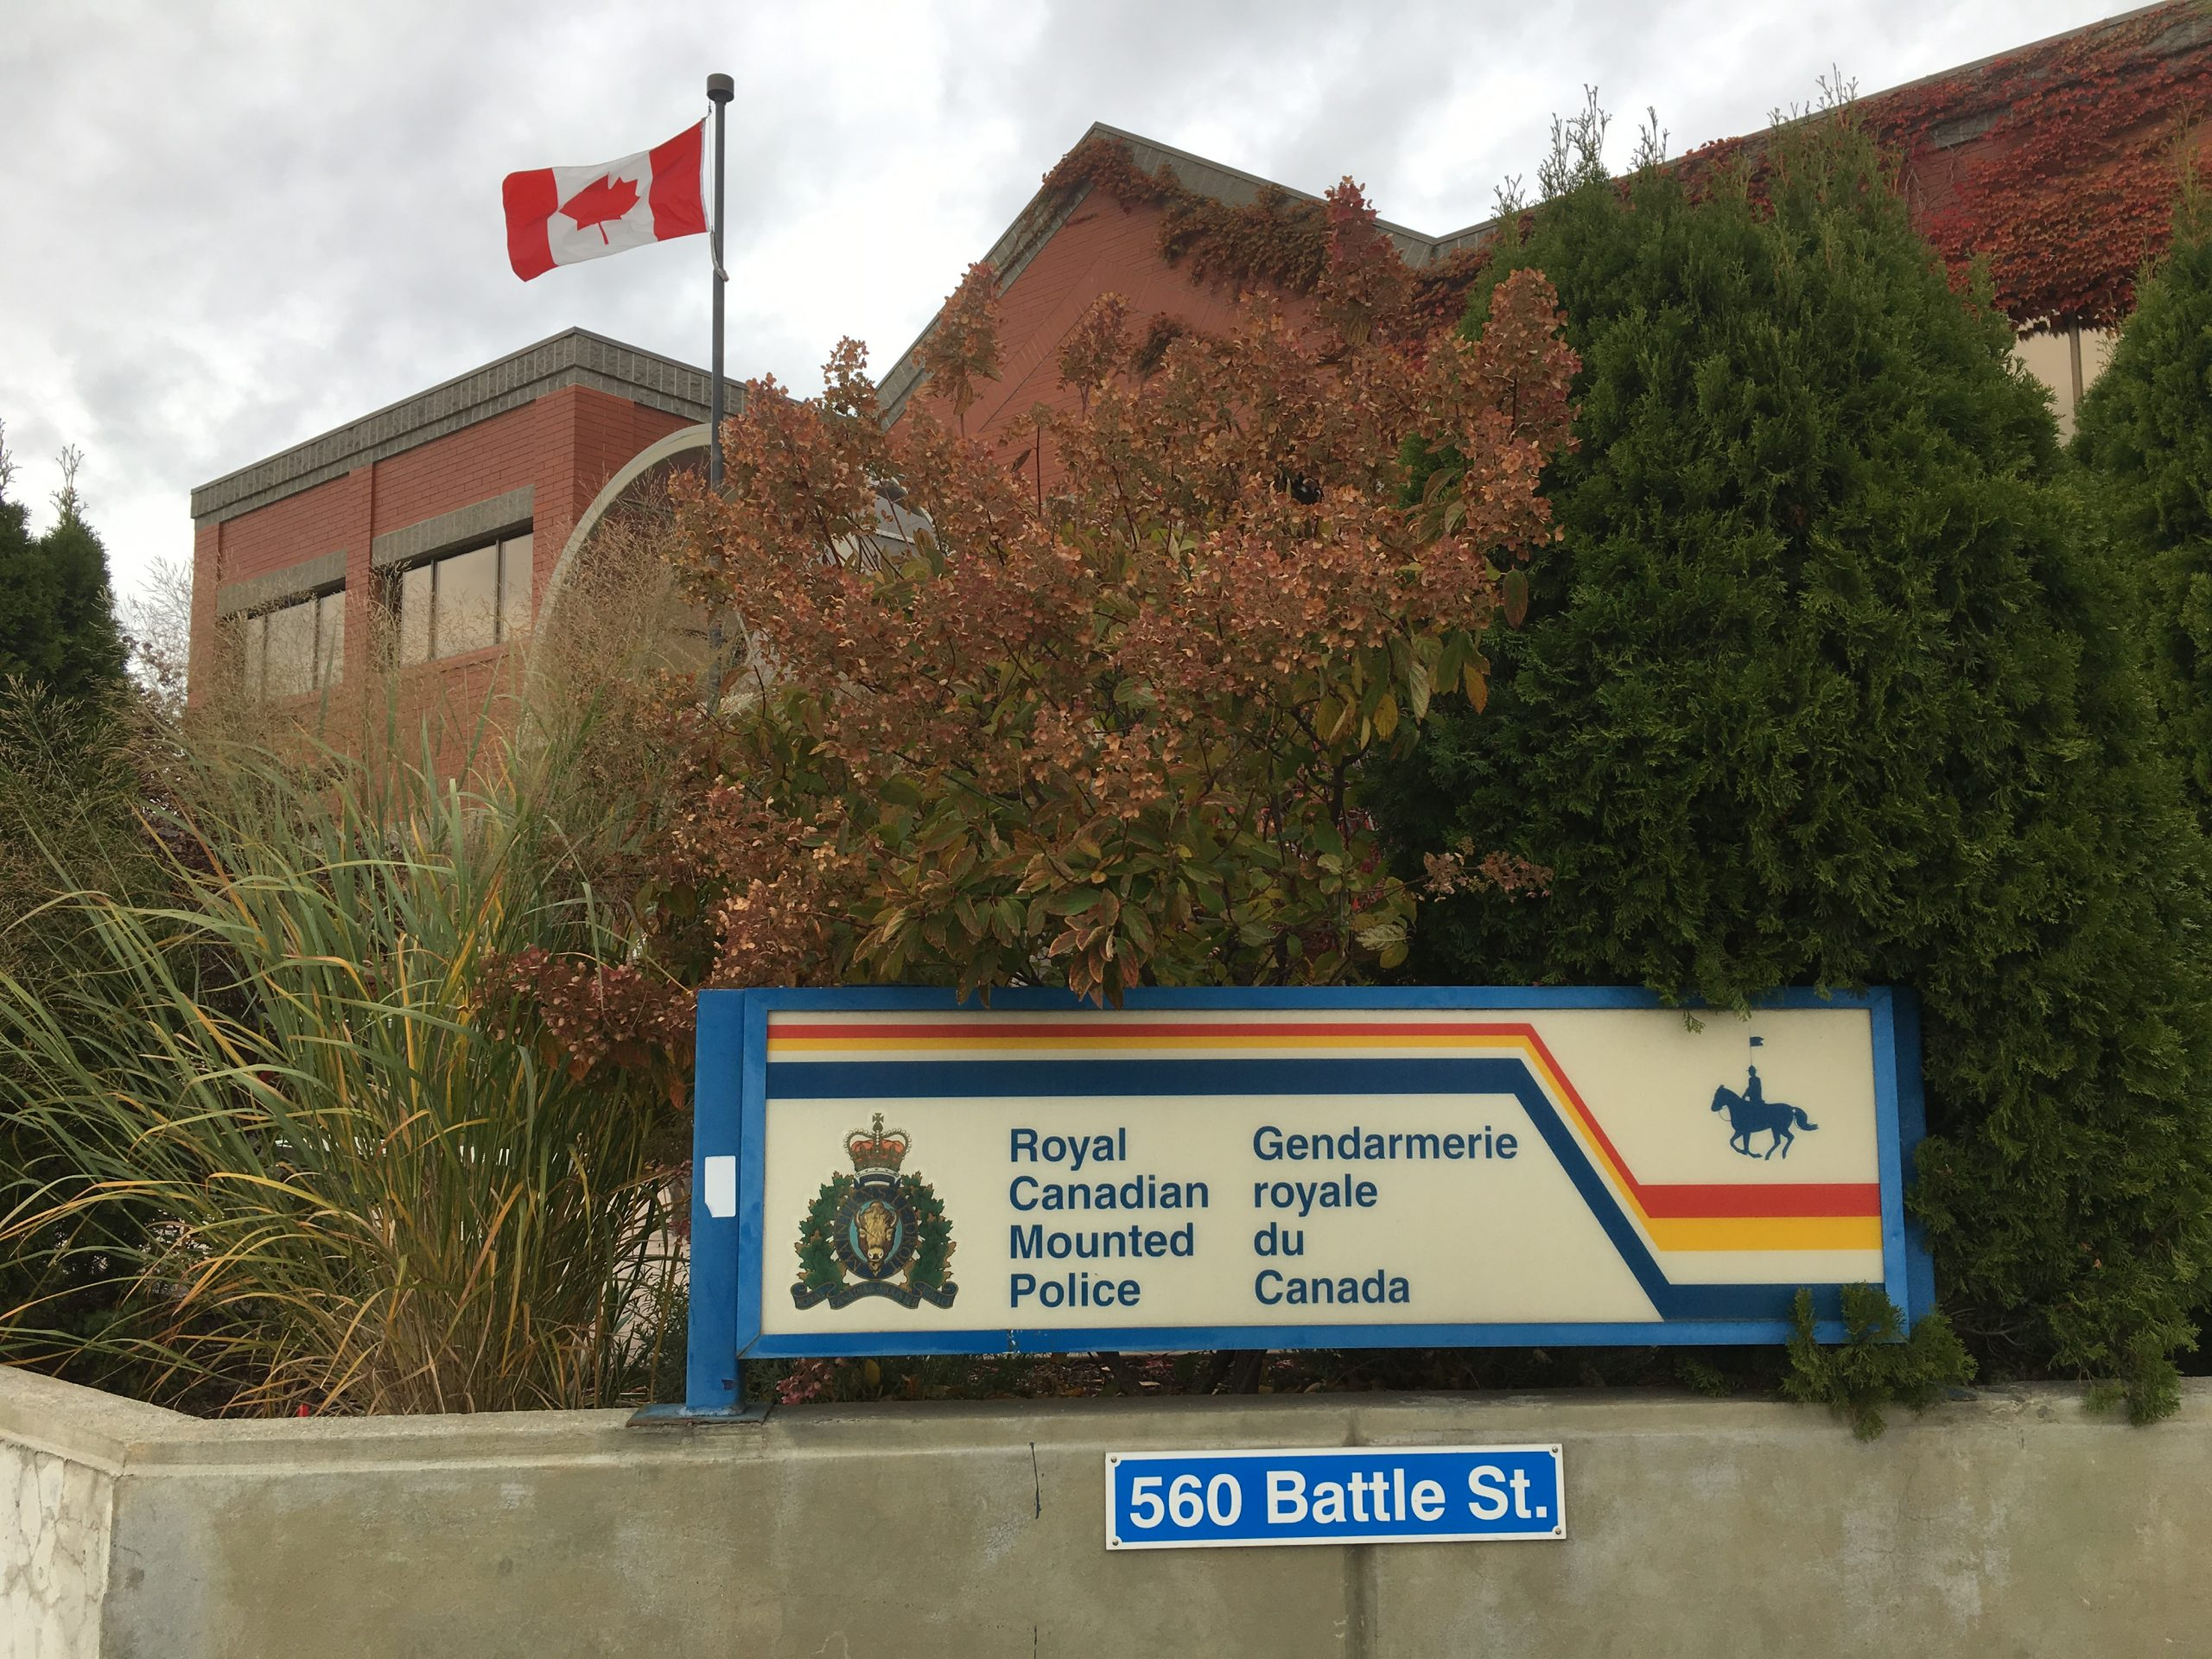 Two major initiatives from Kamloops RCMP in the next quarter